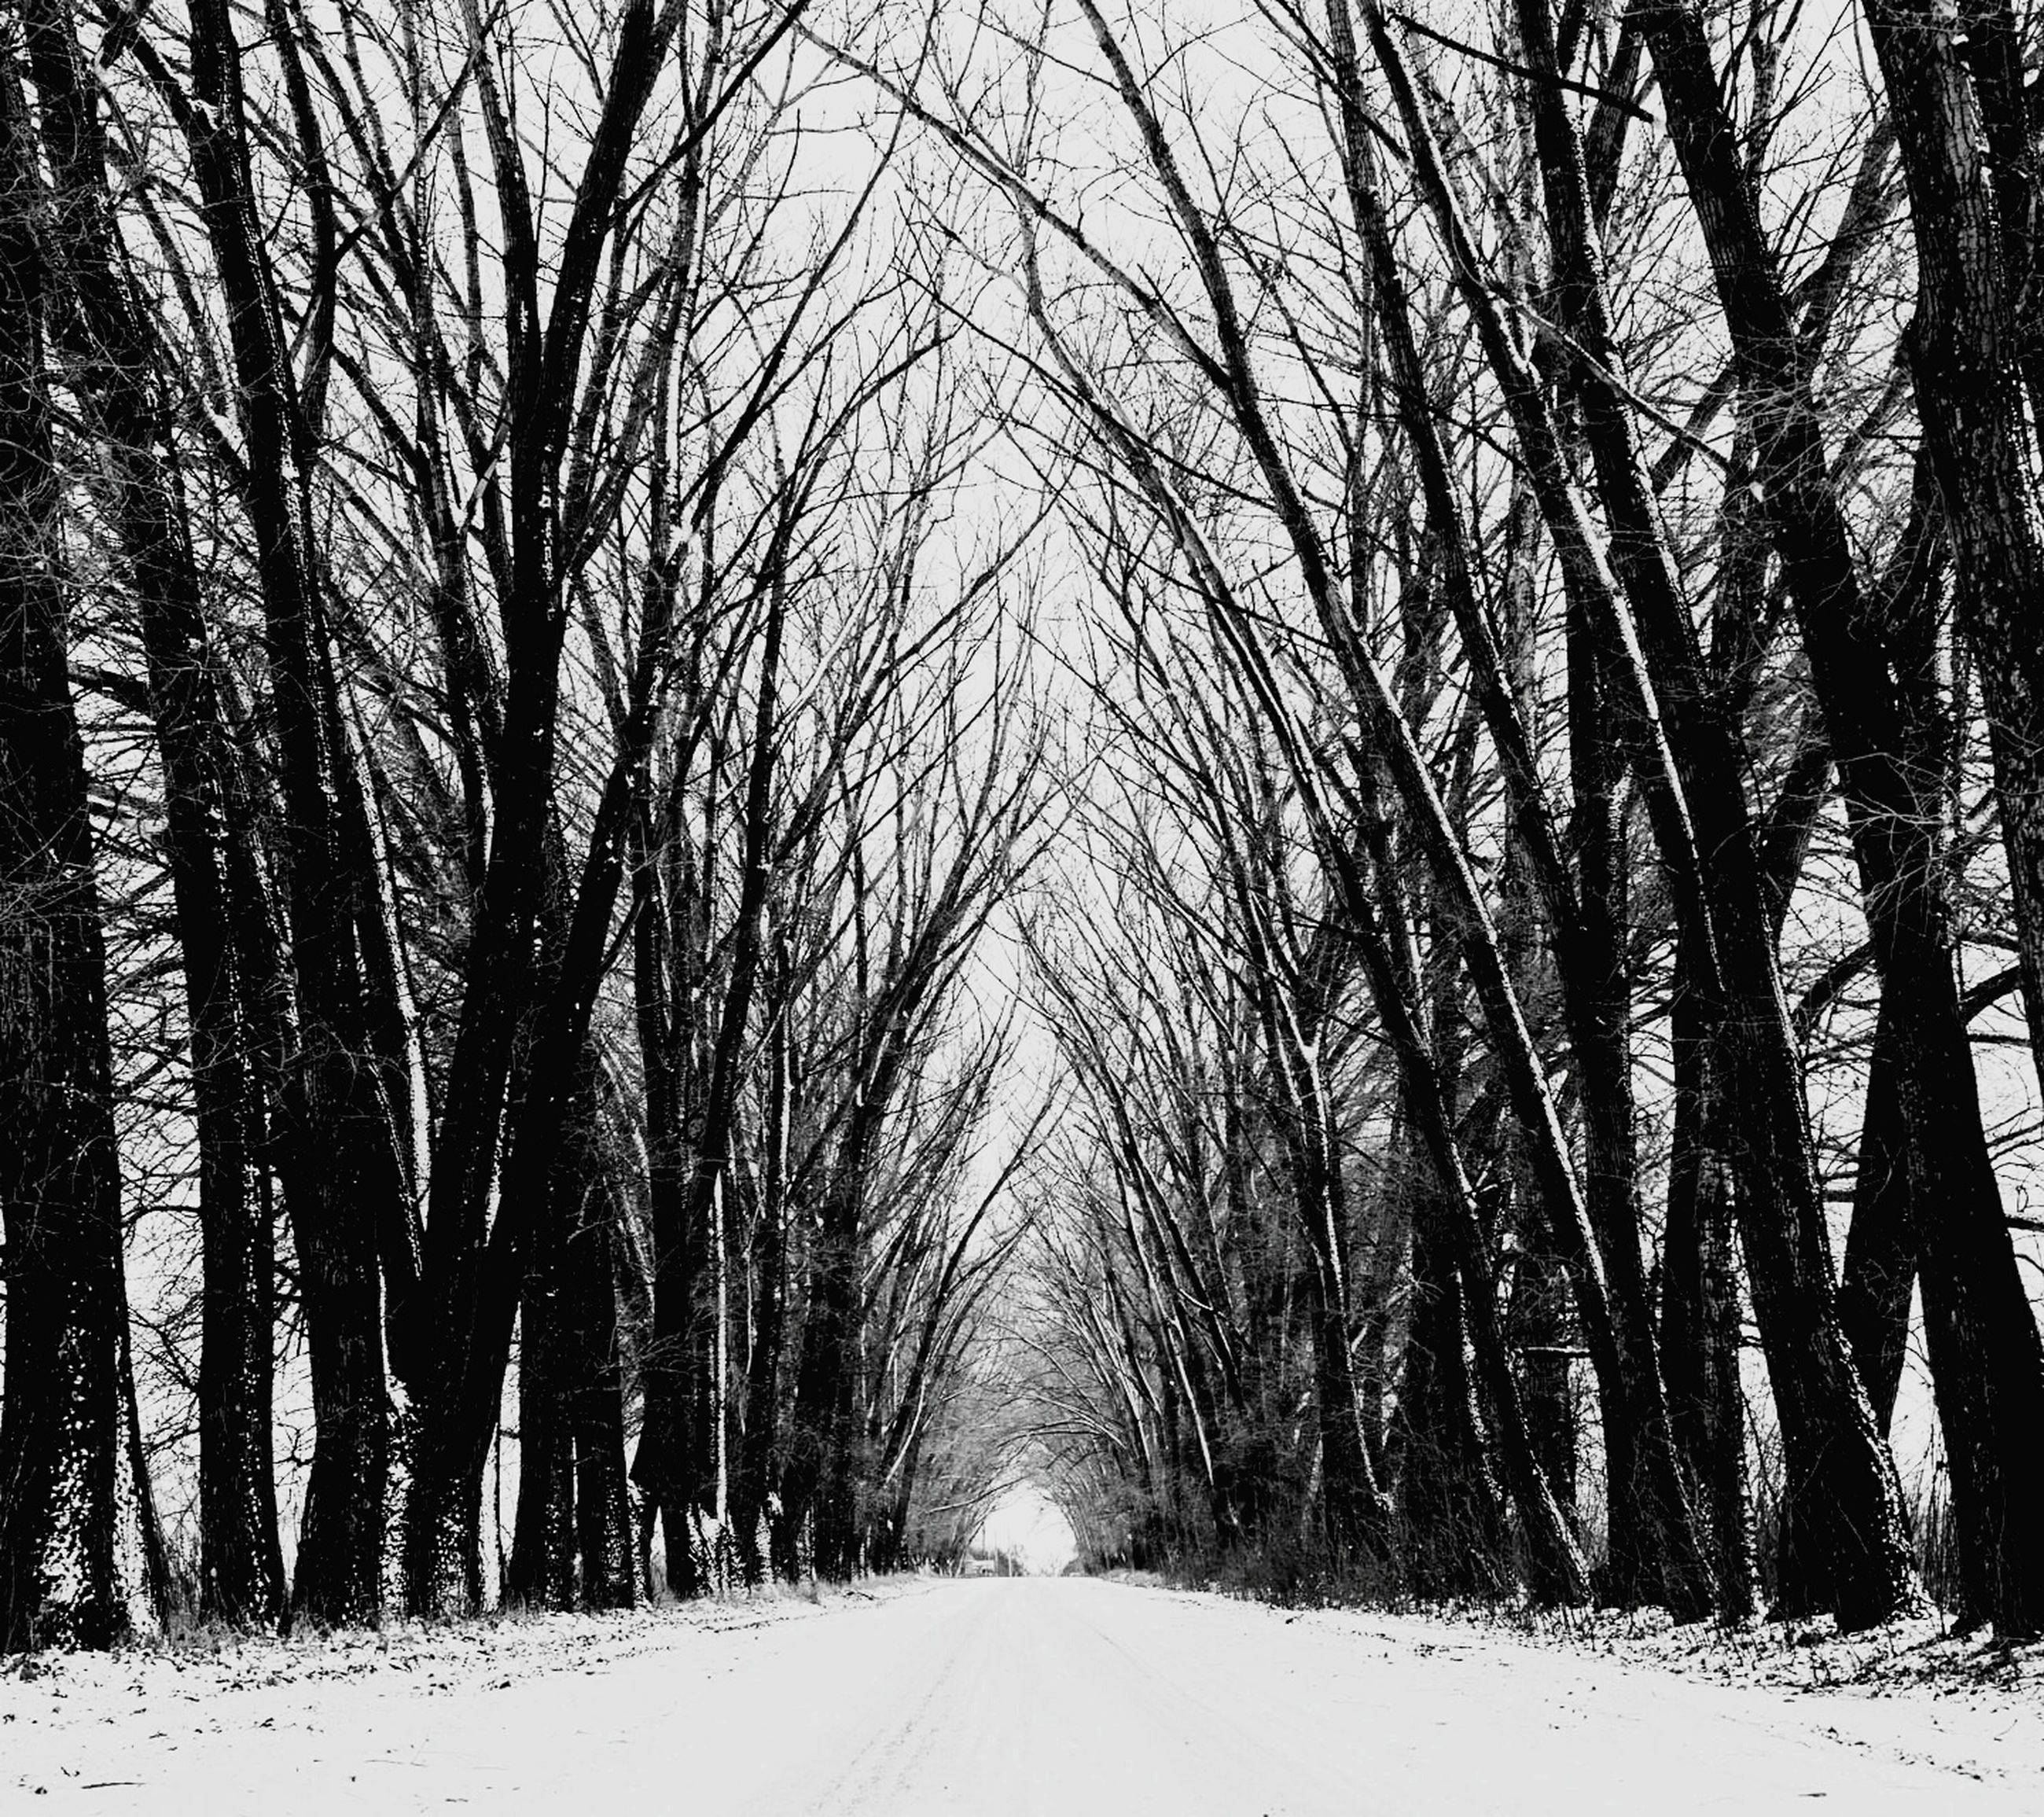 the way forward, tree, diminishing perspective, vanishing point, road, transportation, snow, winter, bare tree, cold temperature, tranquility, nature, treelined, empty road, forest, weather, tranquil scene, branch, season, long